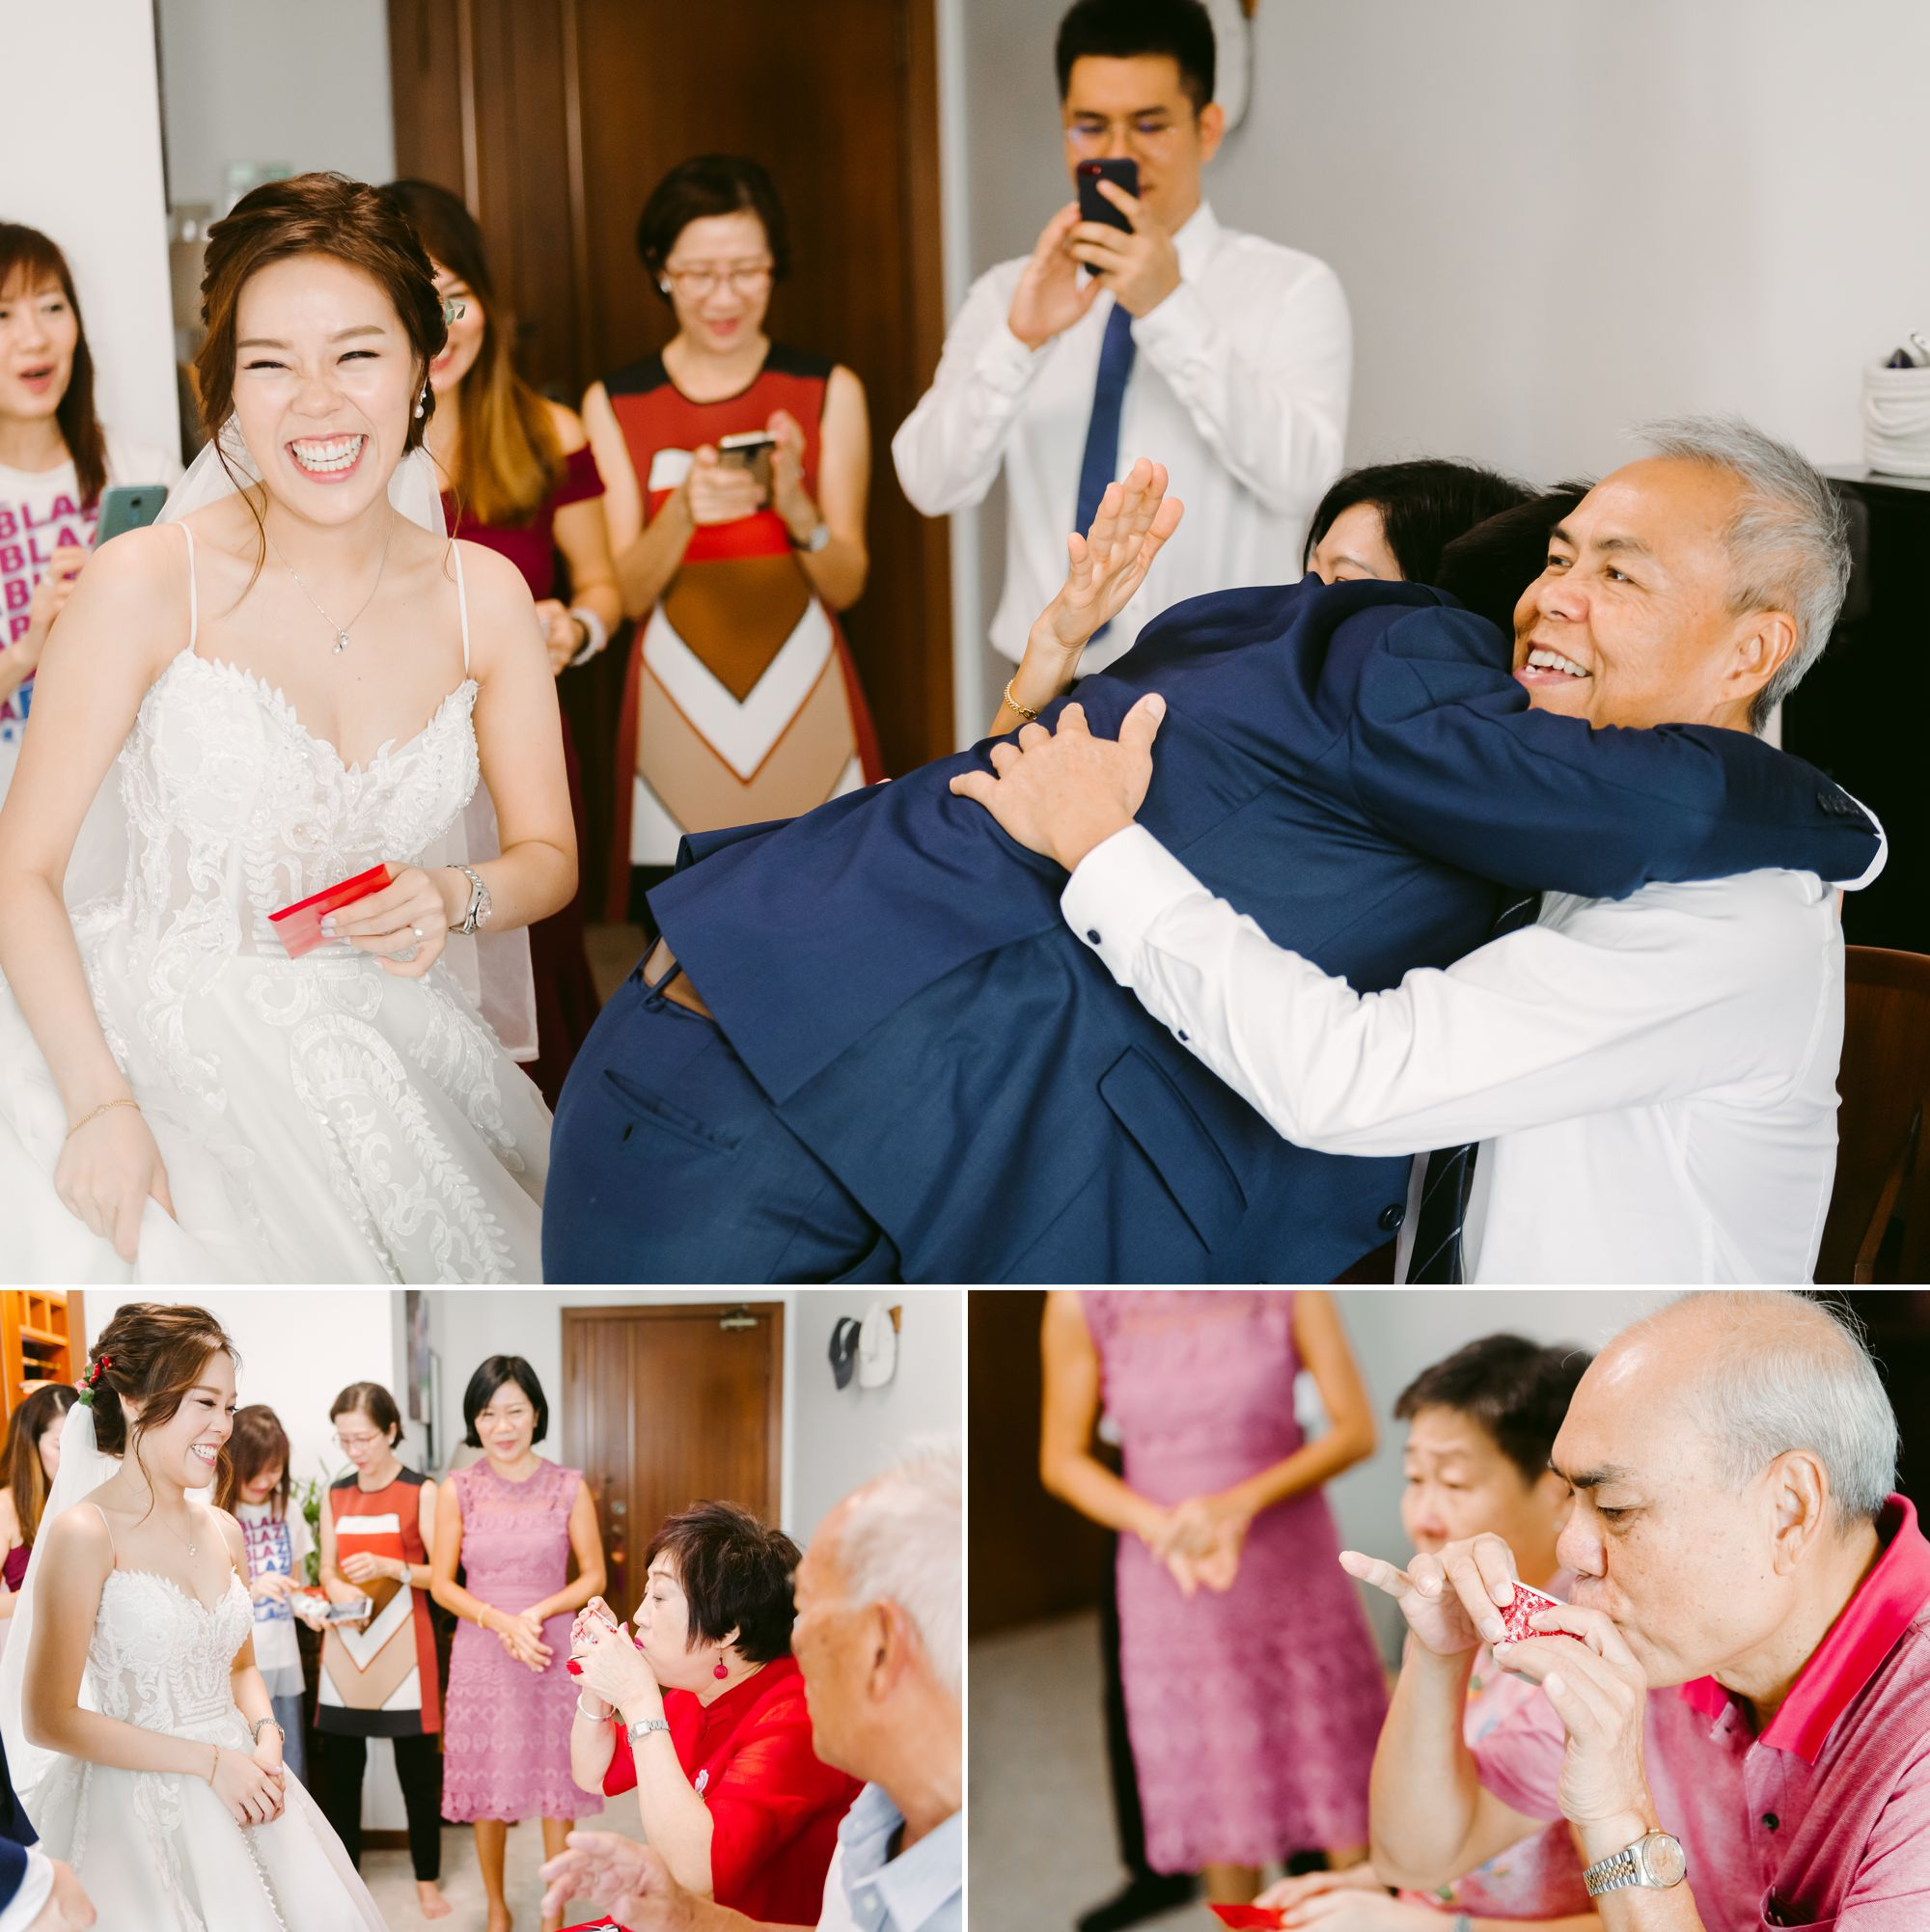 conrad_wedding_Singapore_ 19.jpg